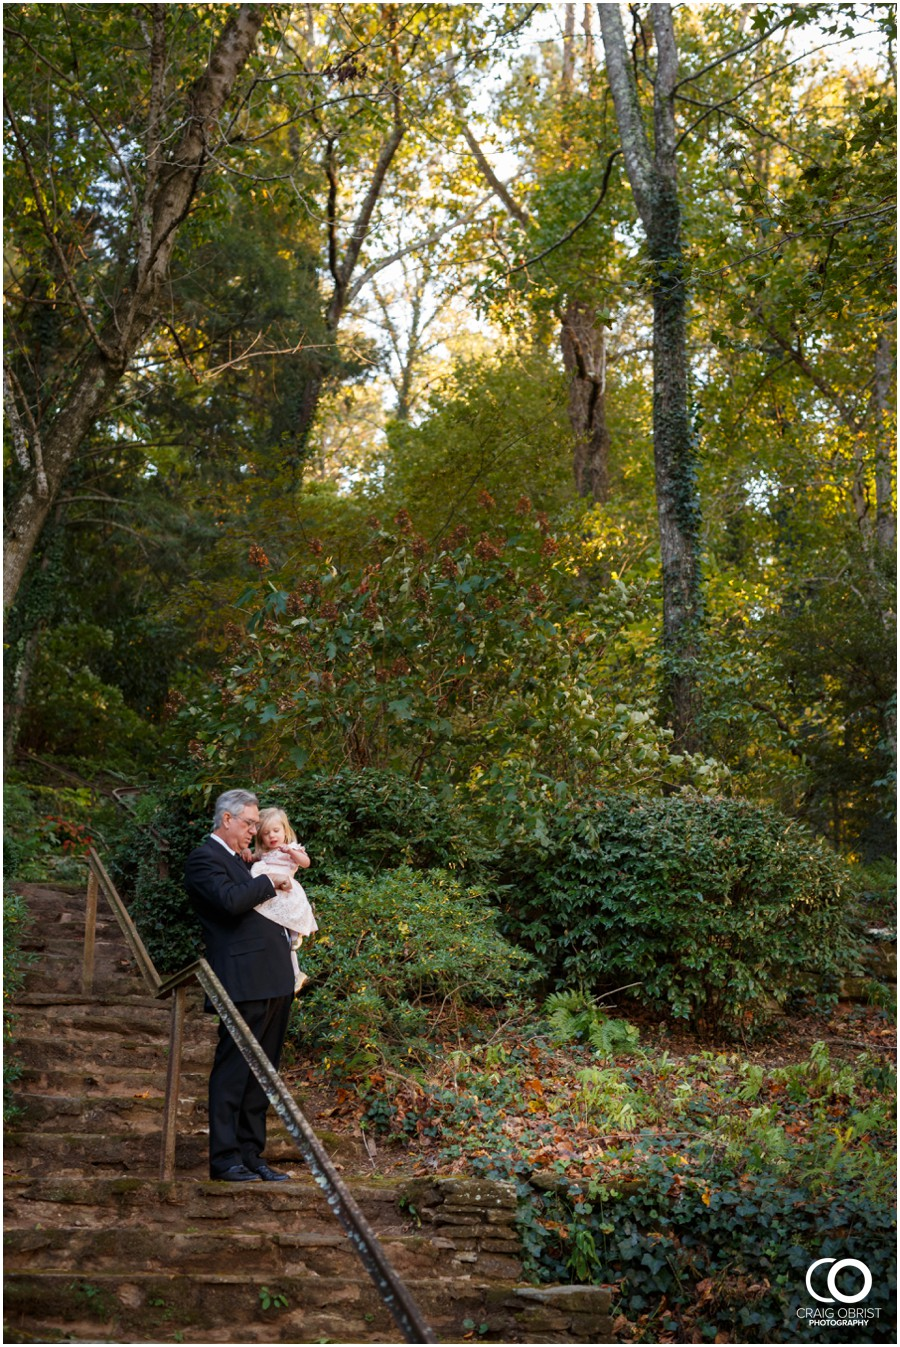 Dunaway gardens Wedding Fairytale Disney Portraits_0074.jpg